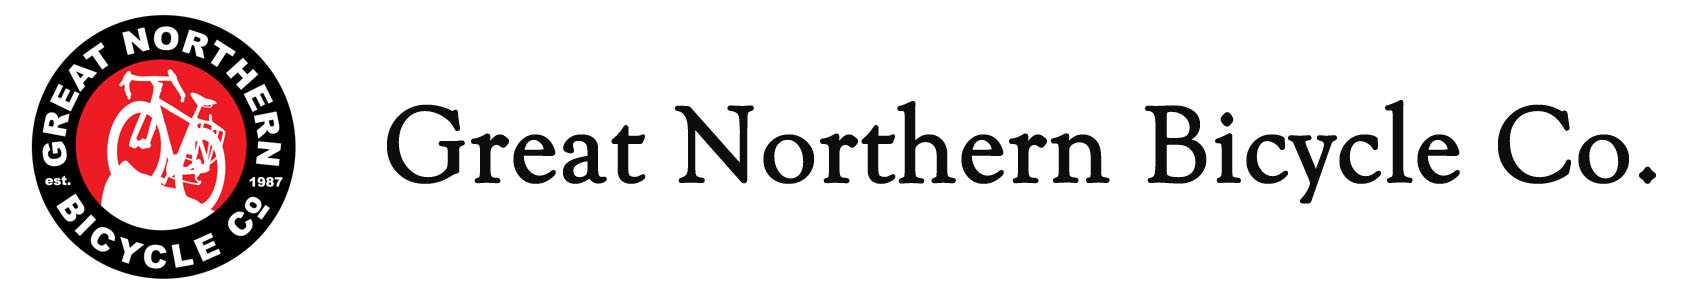 Great Northern Bicycle Co.